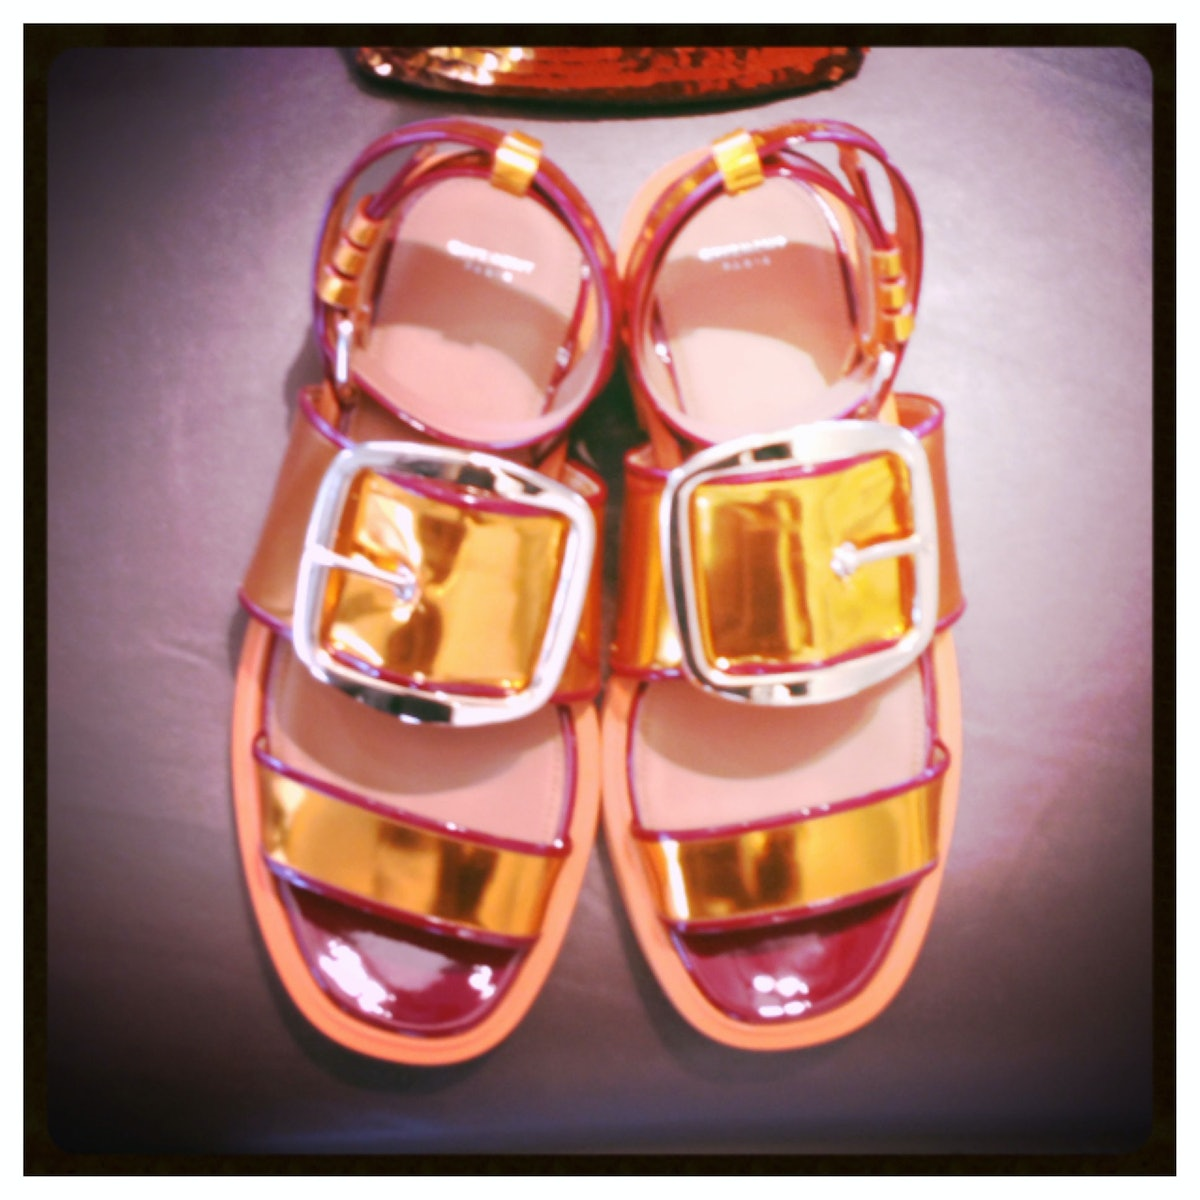 These [Givenchy](http://www.wmagazine.com/mood-board/filter?q=^Designer|Givenchy|) flats flash just ...